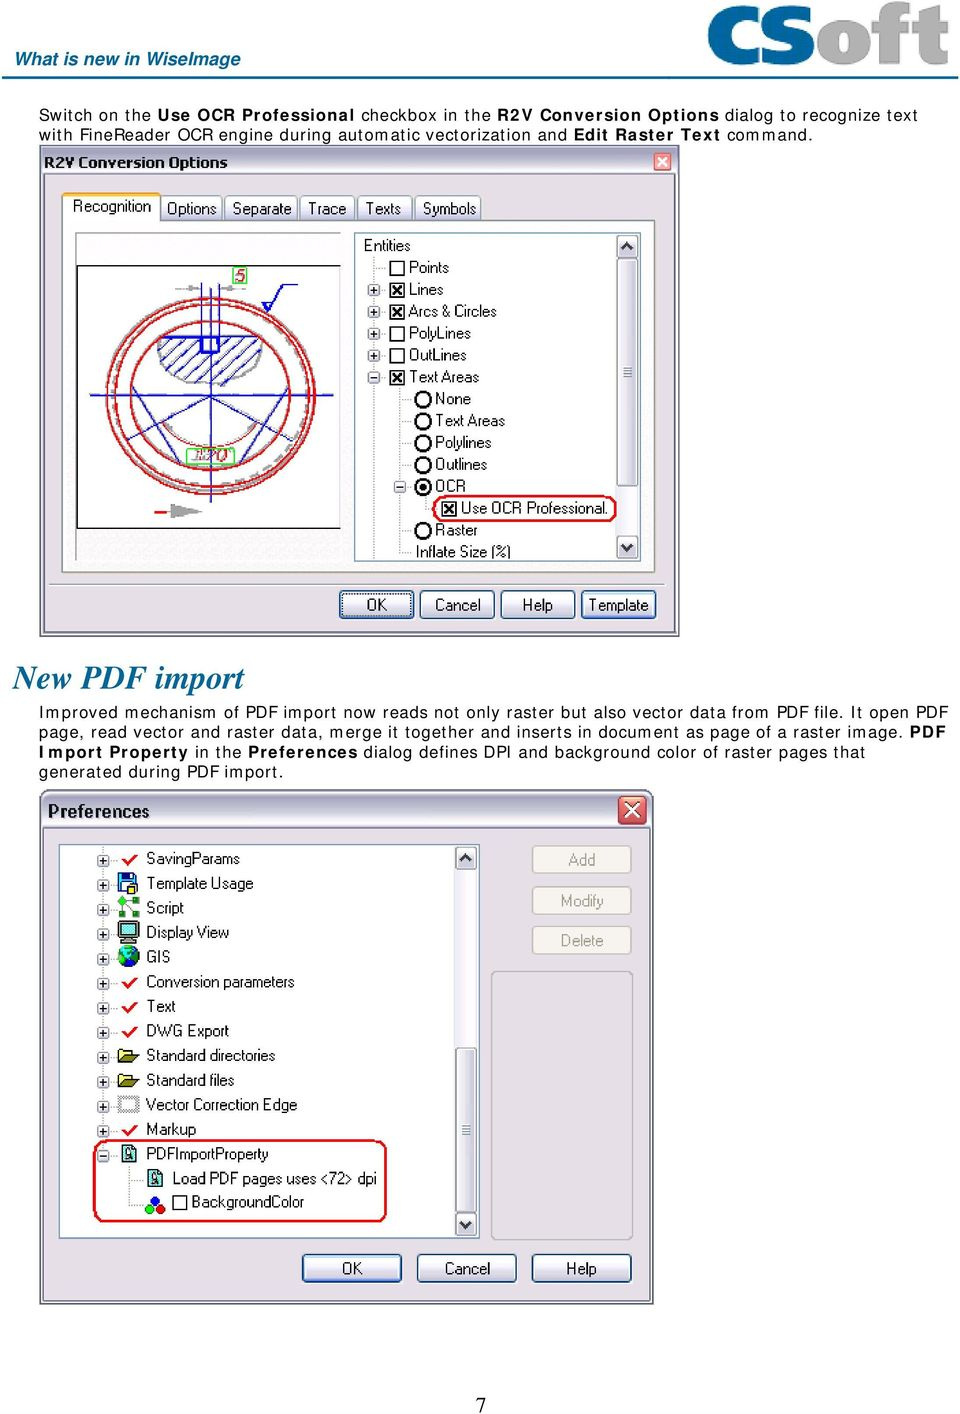 New PDF import Improved mechanism of PDF import now reads not only raster but also vector data from PDF file.